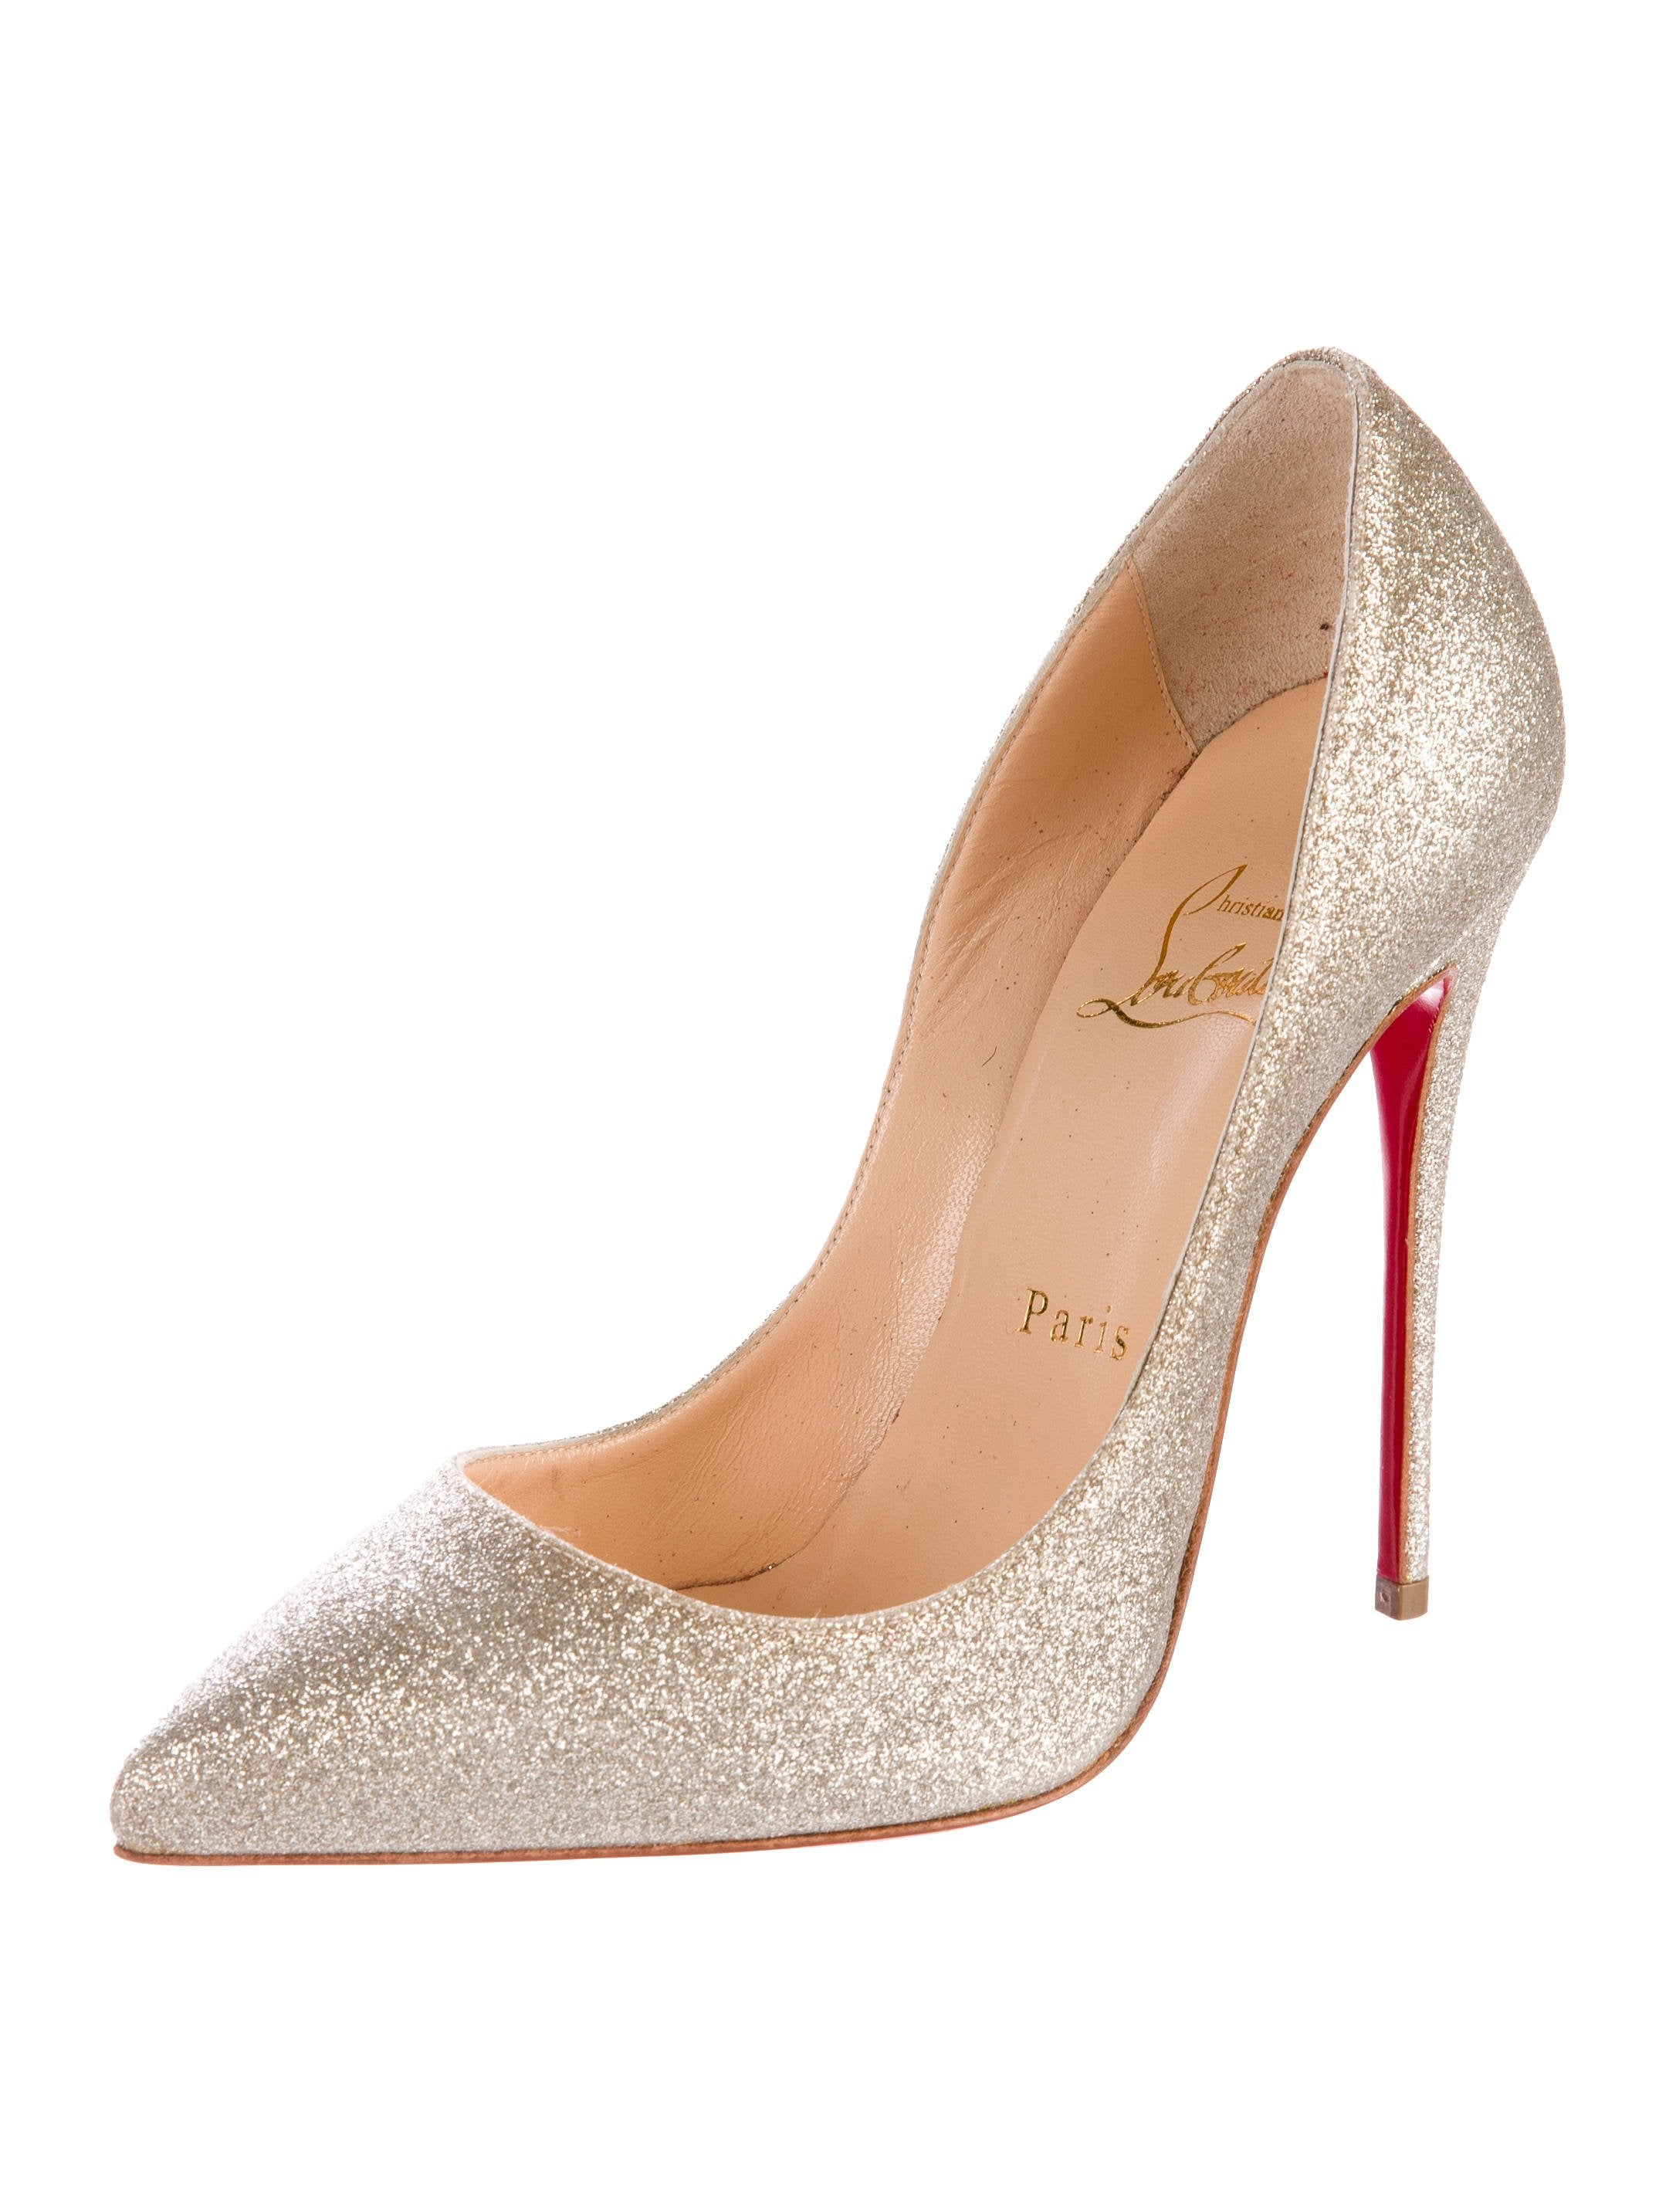 5f0a2539205 Christian Louboutin NEW Glitter Leather Evening Pigalle Heels Pumps For Sale  at 1stdibs